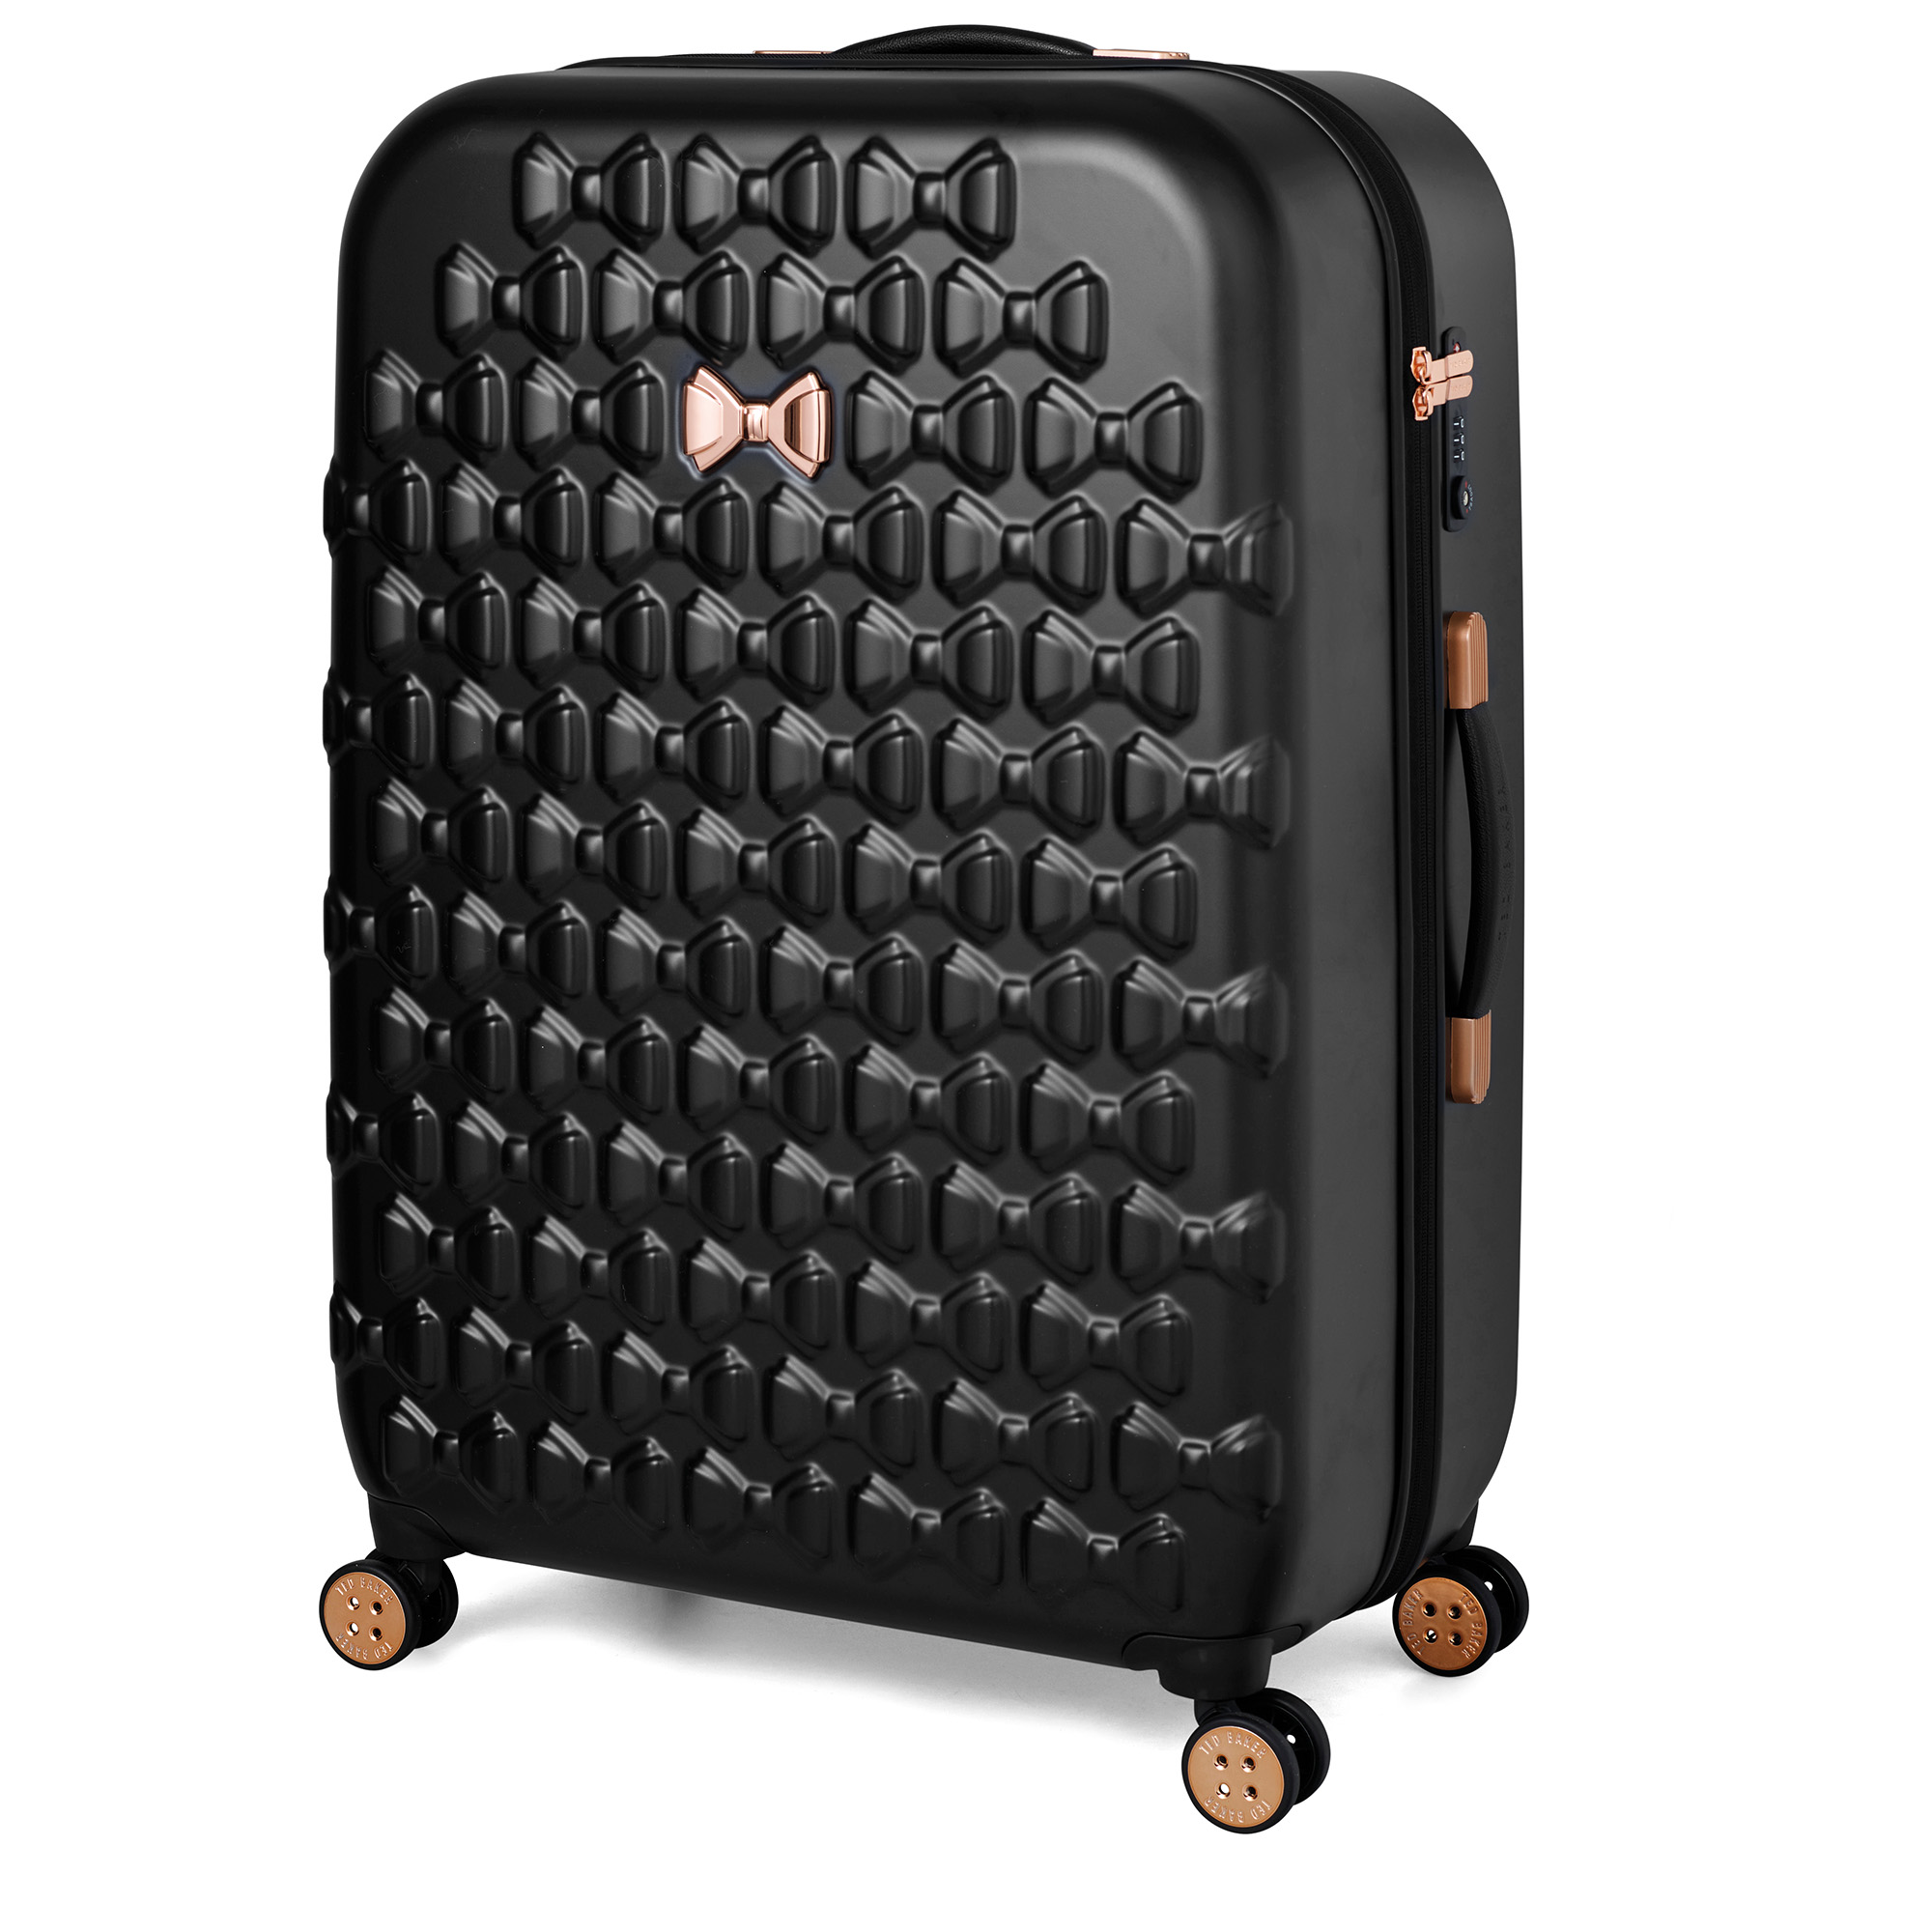 Beau Large 4 Wheel Trolley Suitcase Black